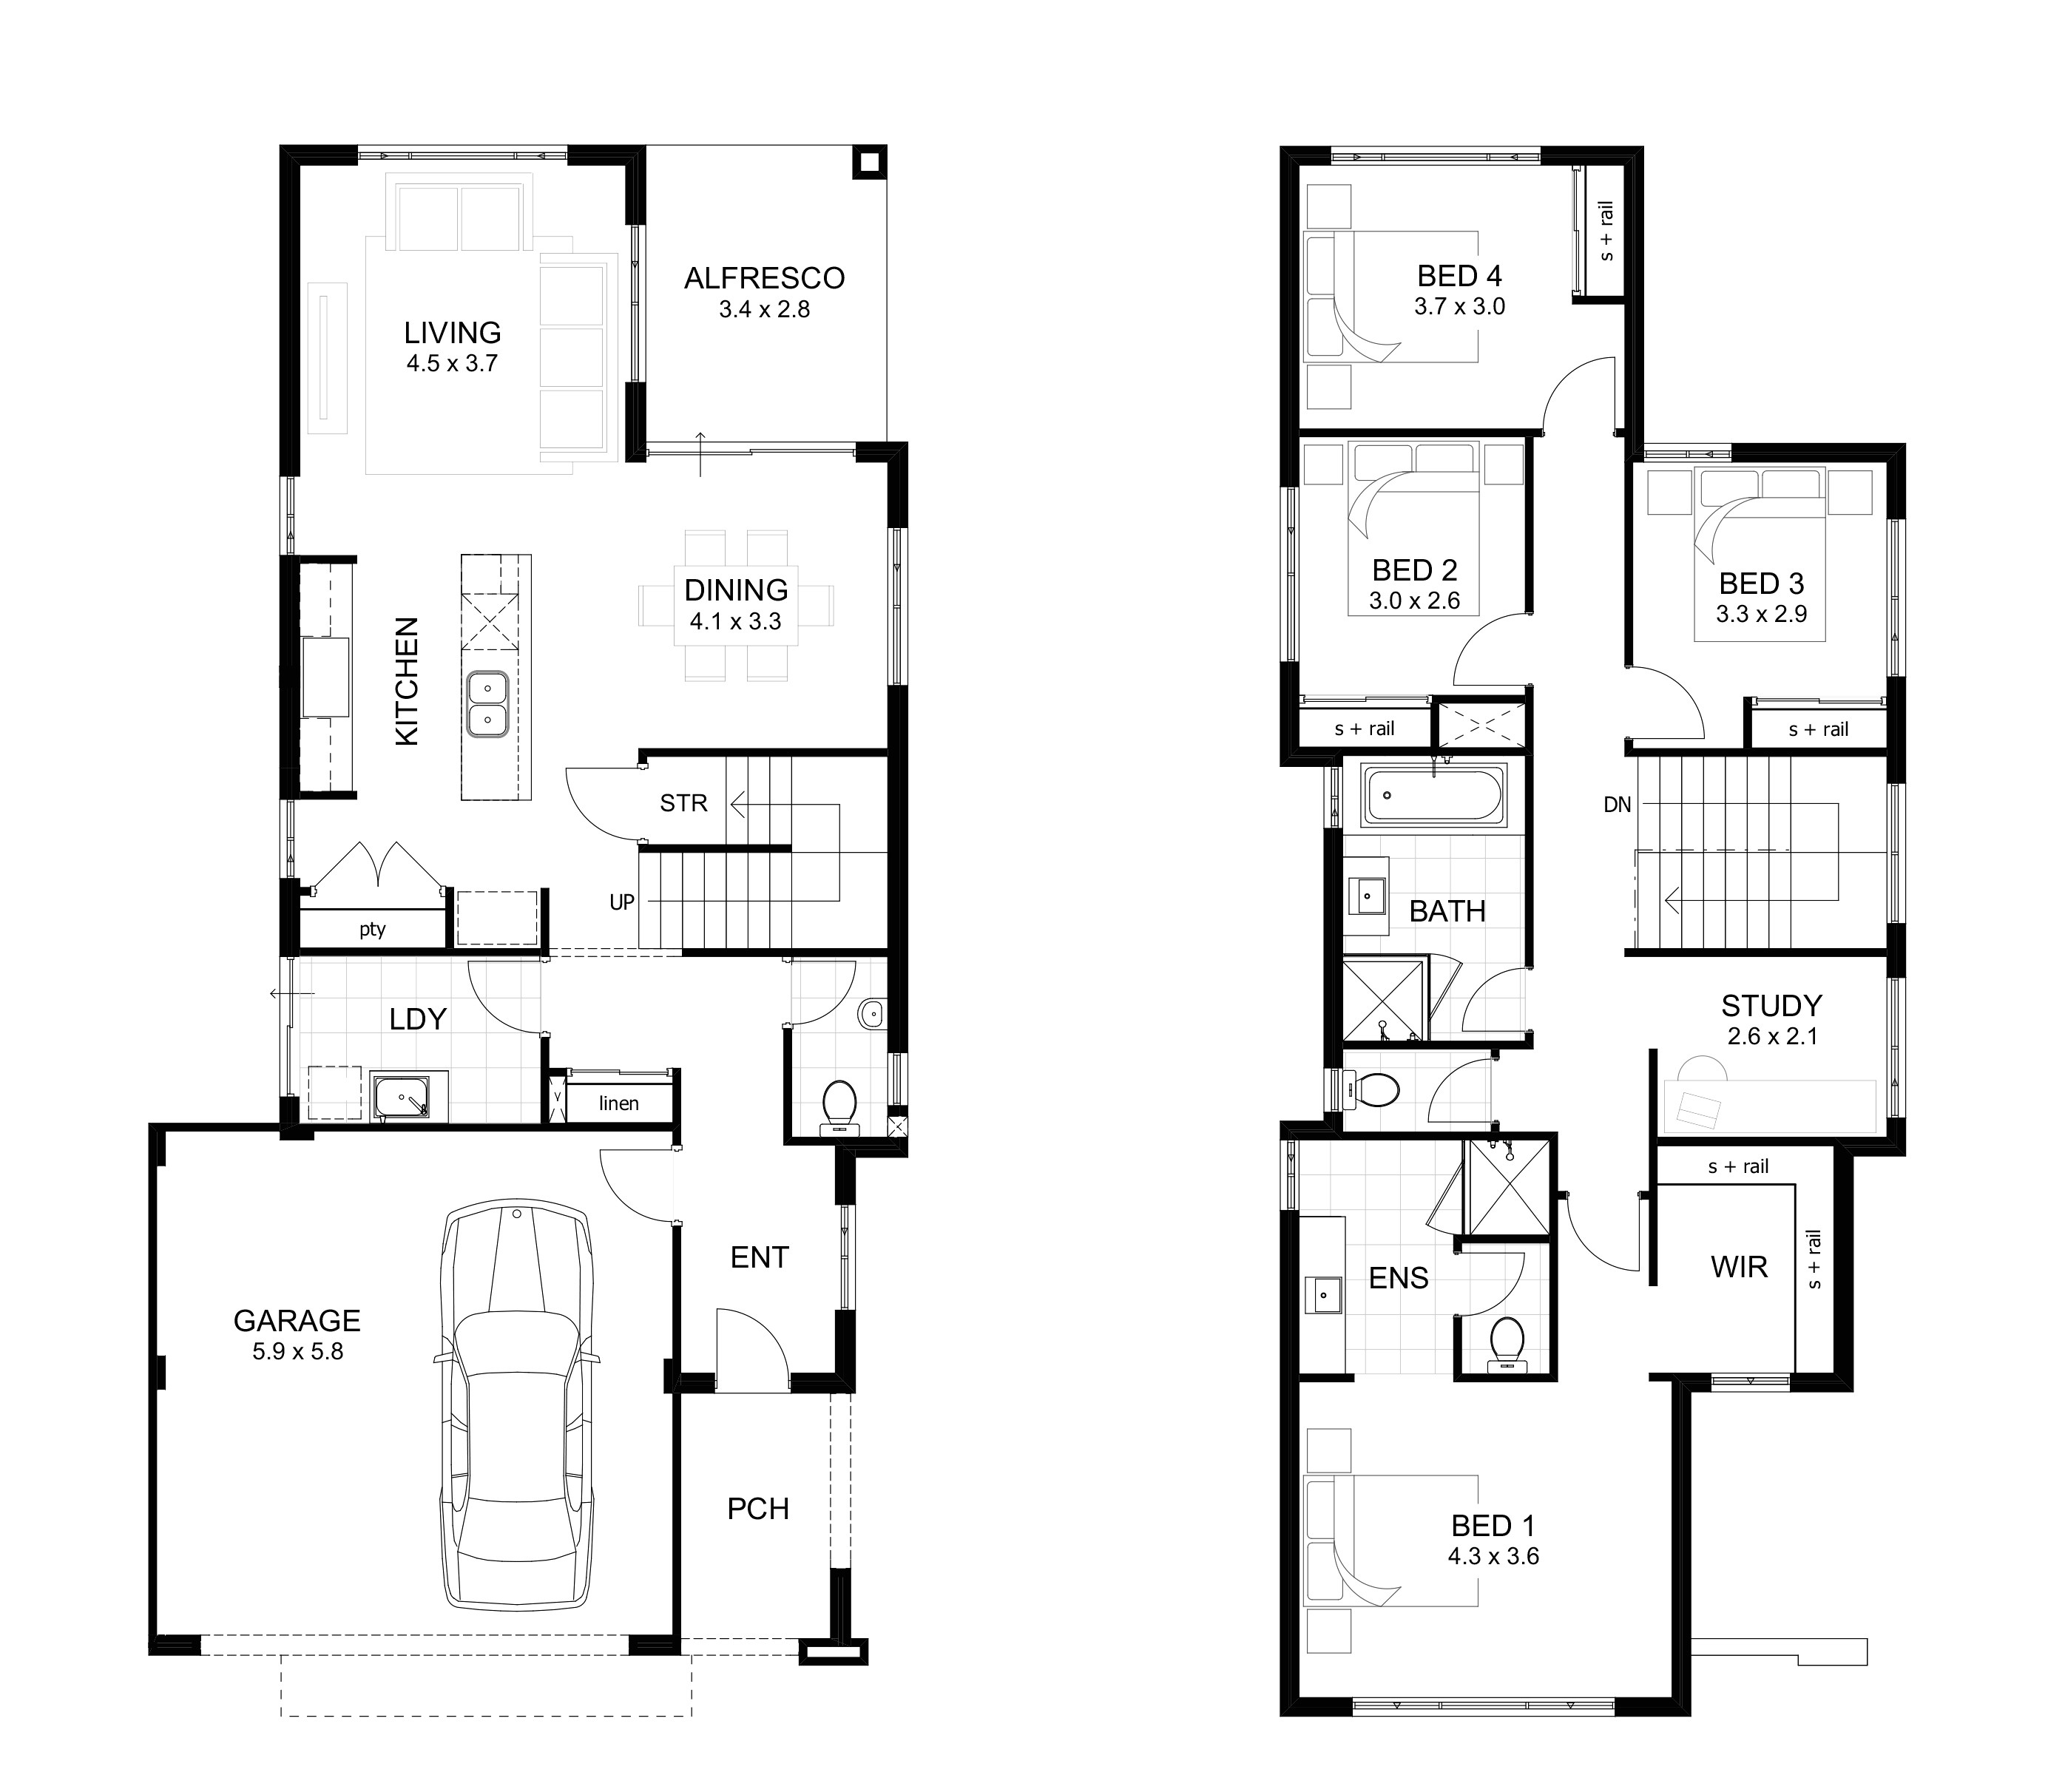 5 bedroom house plans luxury 5 bedroom house floor plans awesome floor plans aflfpw 1 story